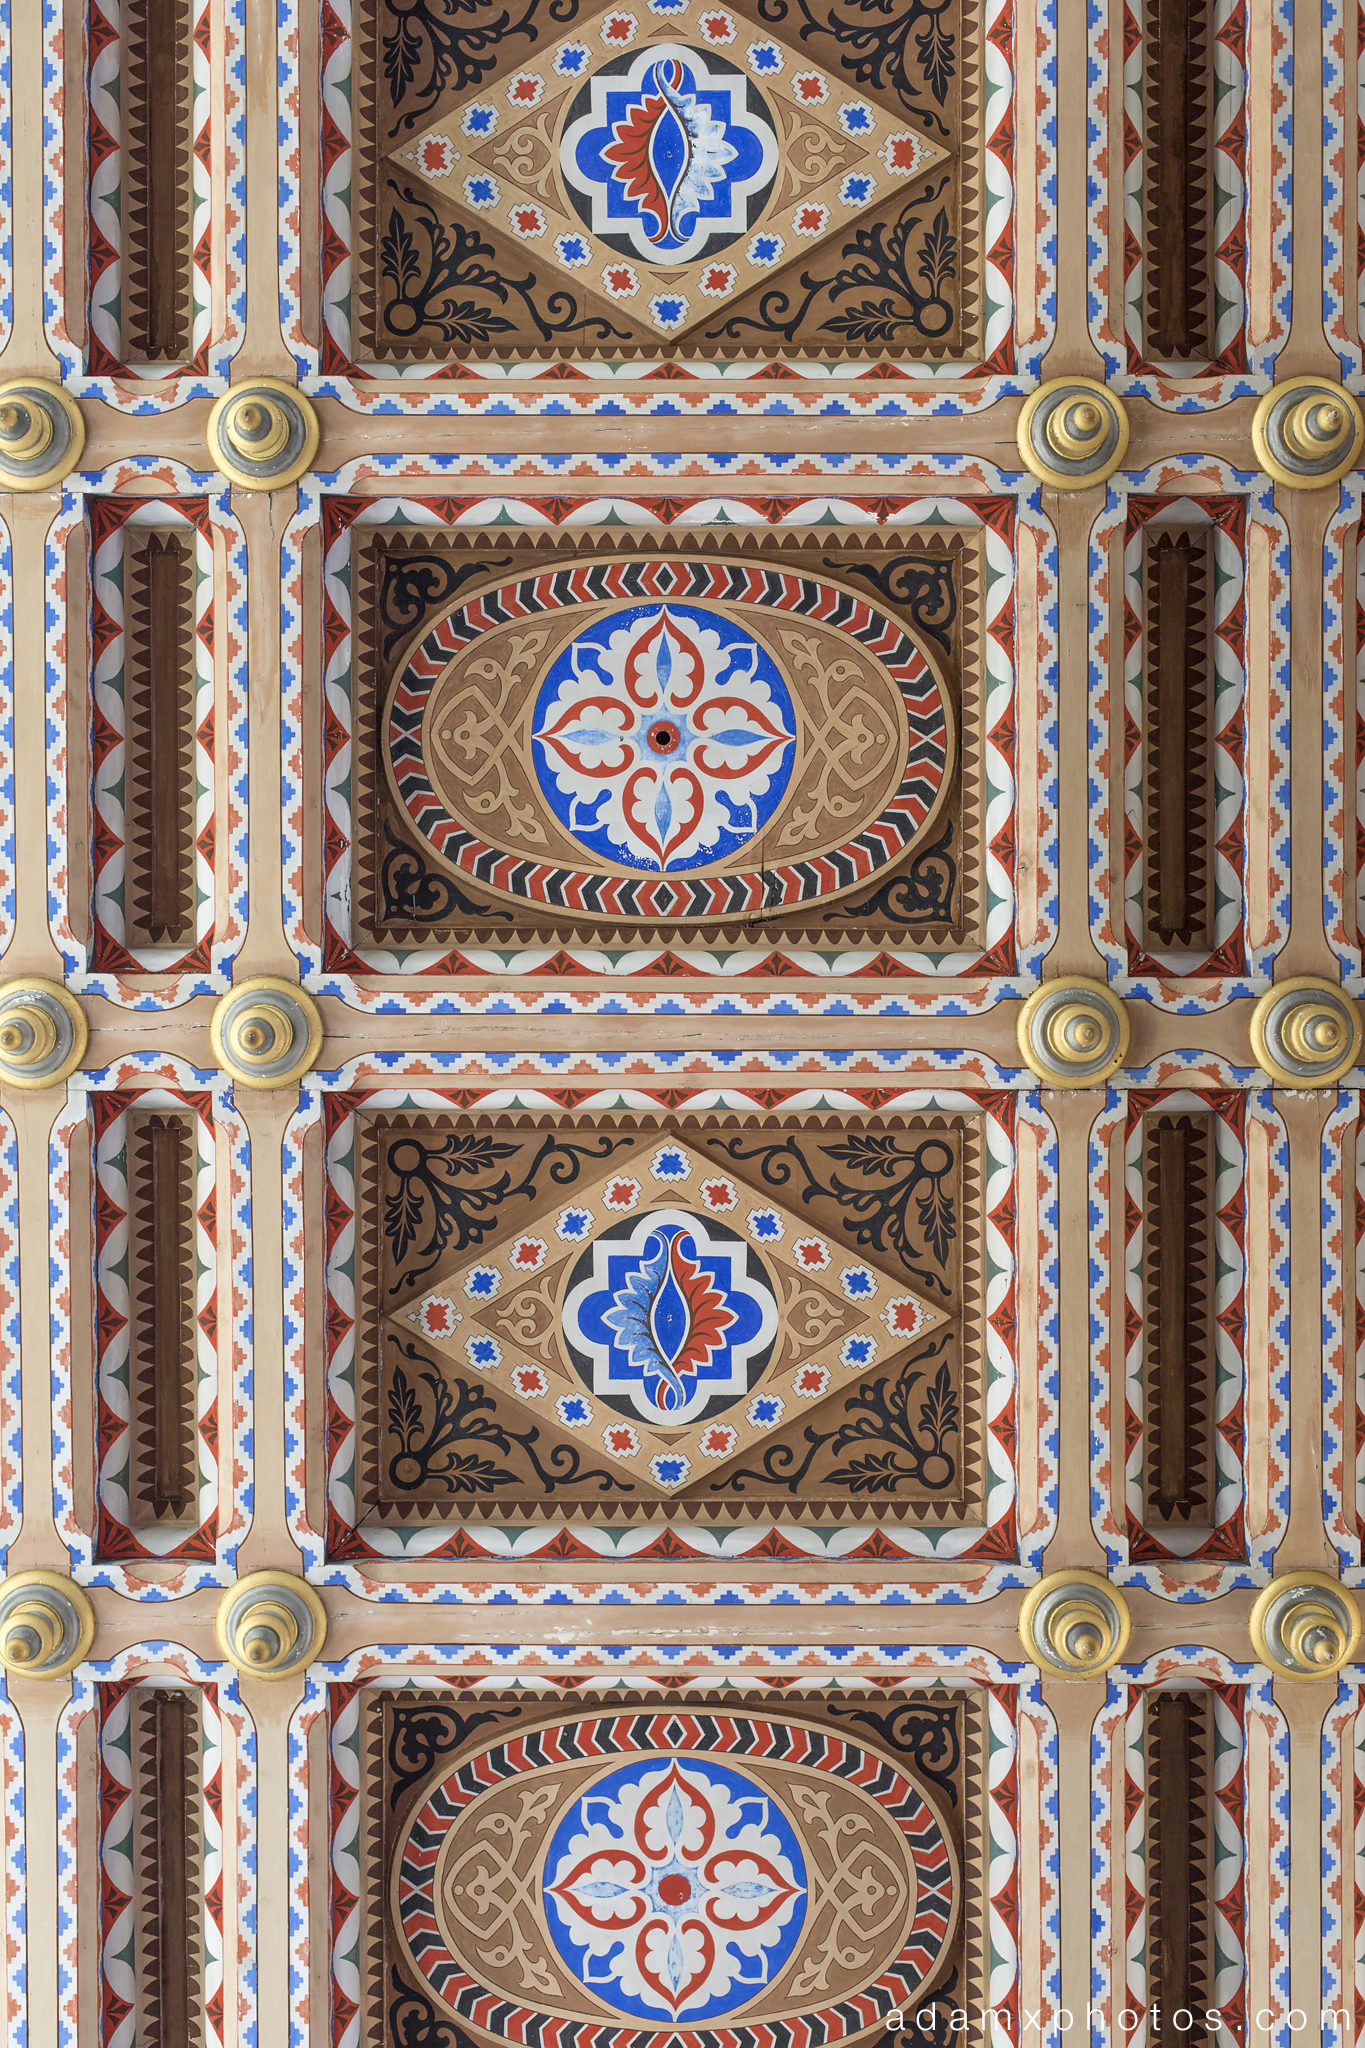 ceiling Non Plus Ultra Fairytale Castle of Sammezzano Castello di Sammezzano Urbex Adam X Urban Exploration photo photos report decay detail UE abandoned Ornate Moorish tiling tiled derelict unused empty disused decay decayed decaying grimy grime